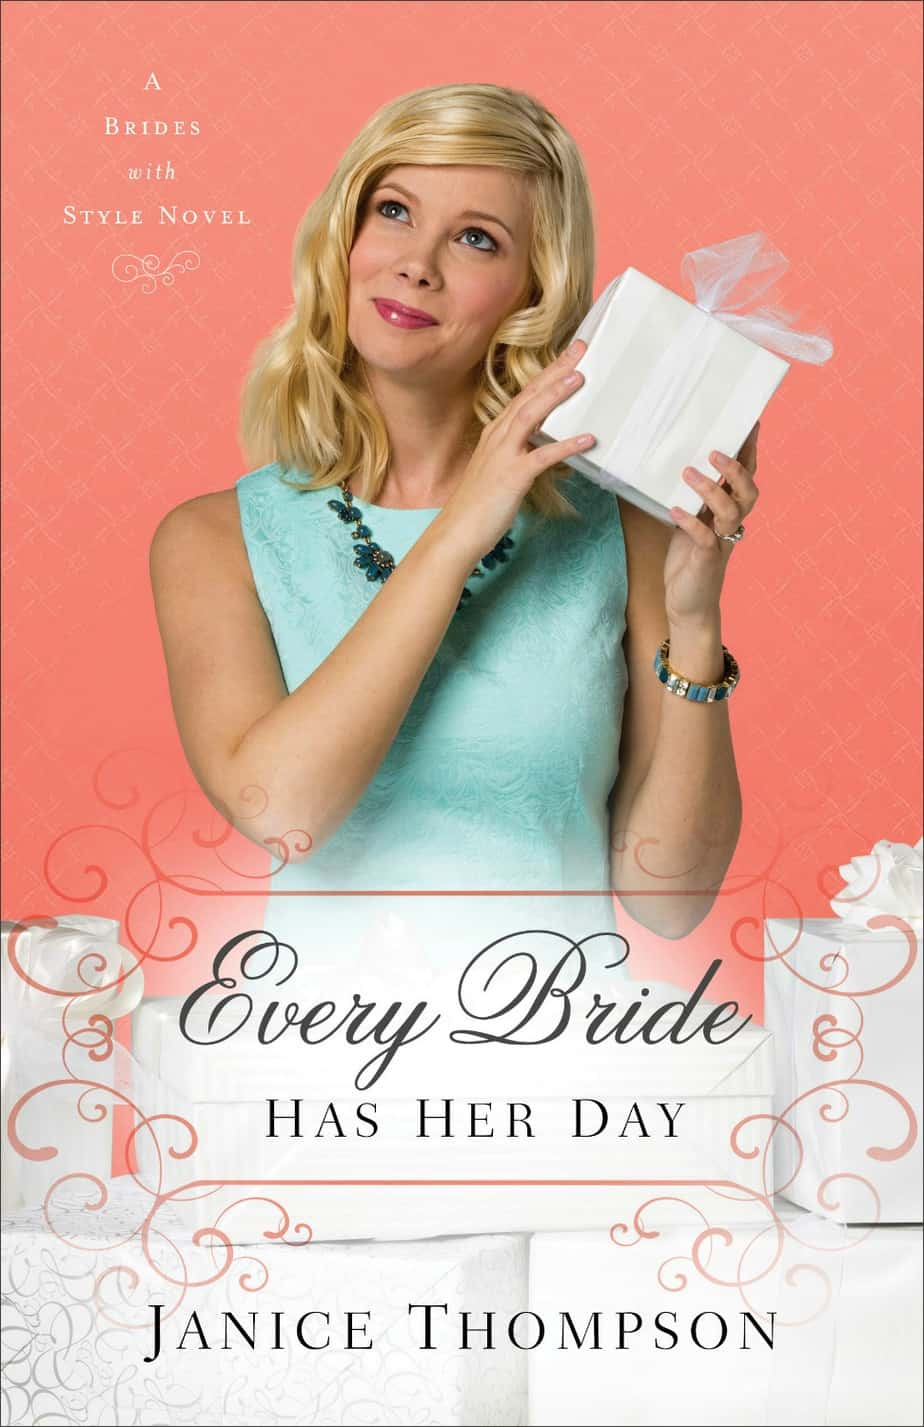 Every Bride Has Her Day by Janice Thompson